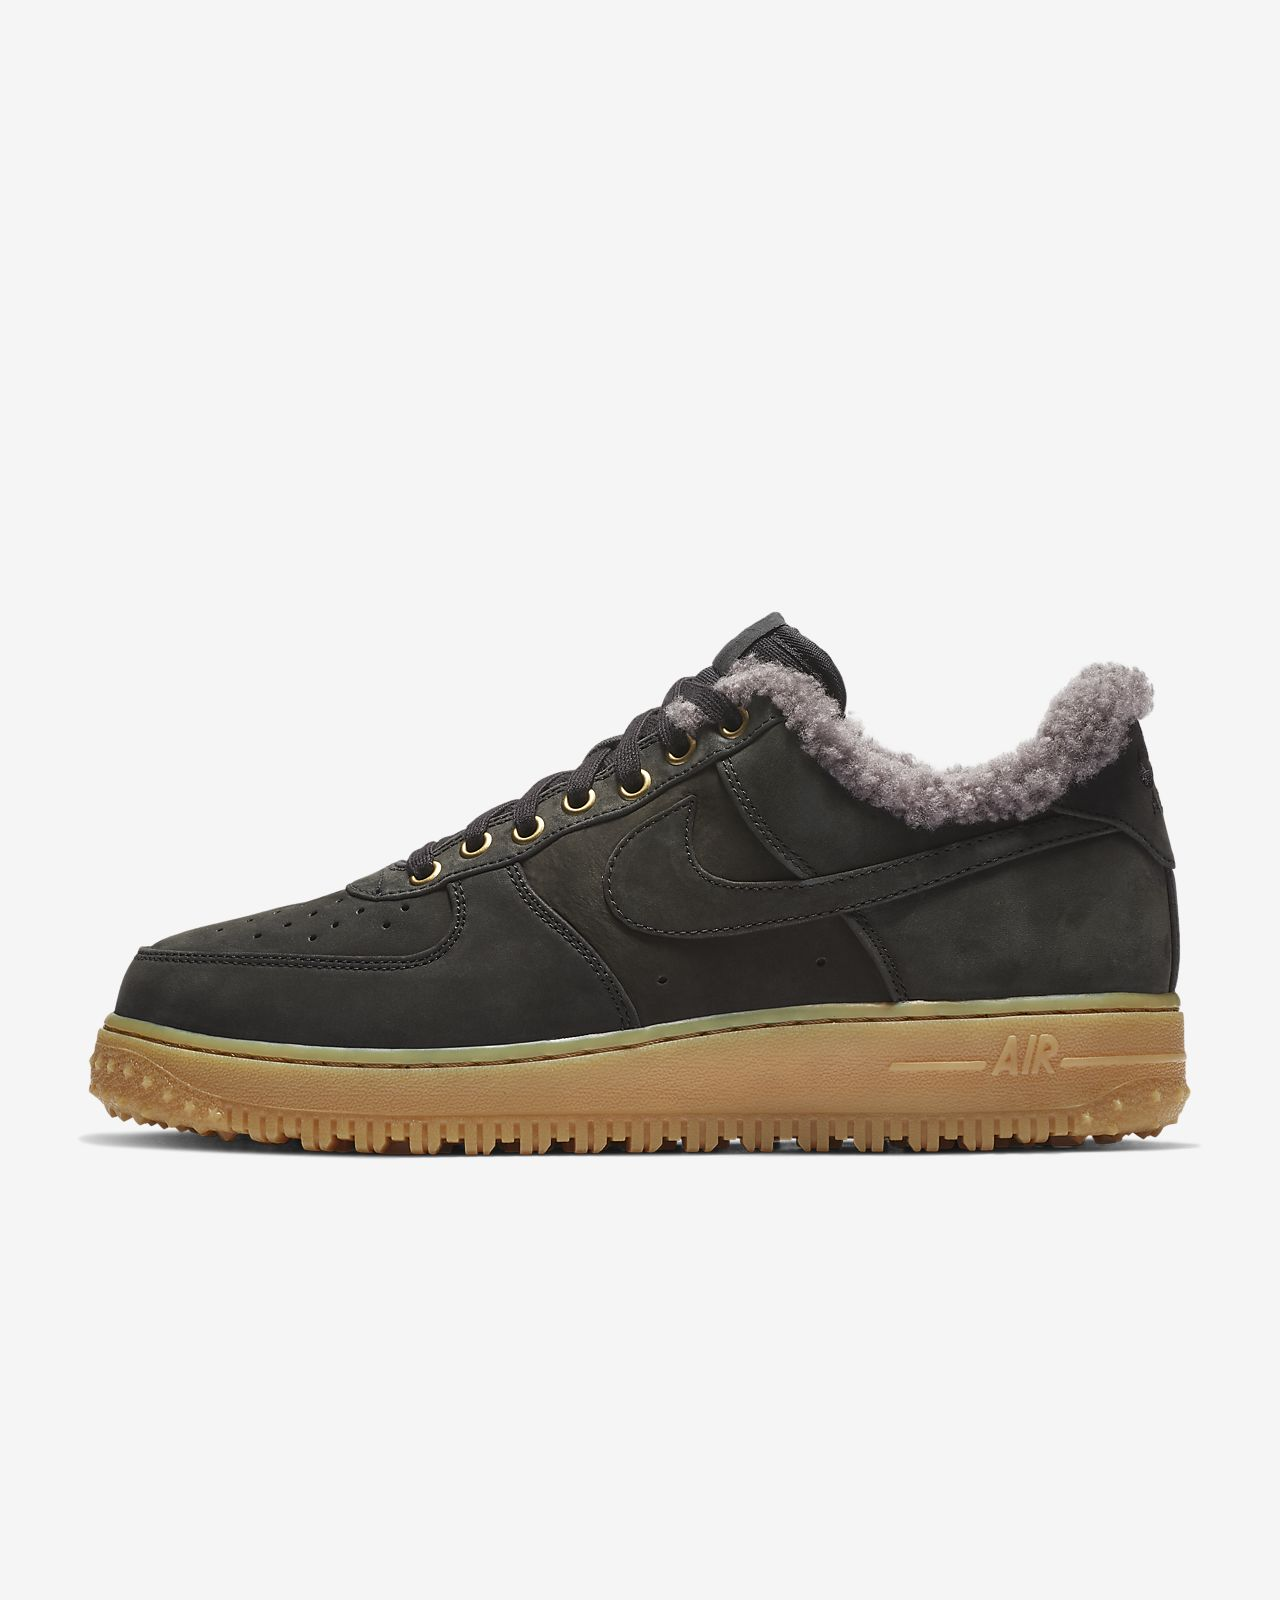 Nike Air Force 1 Premium Winter Herrenschuh